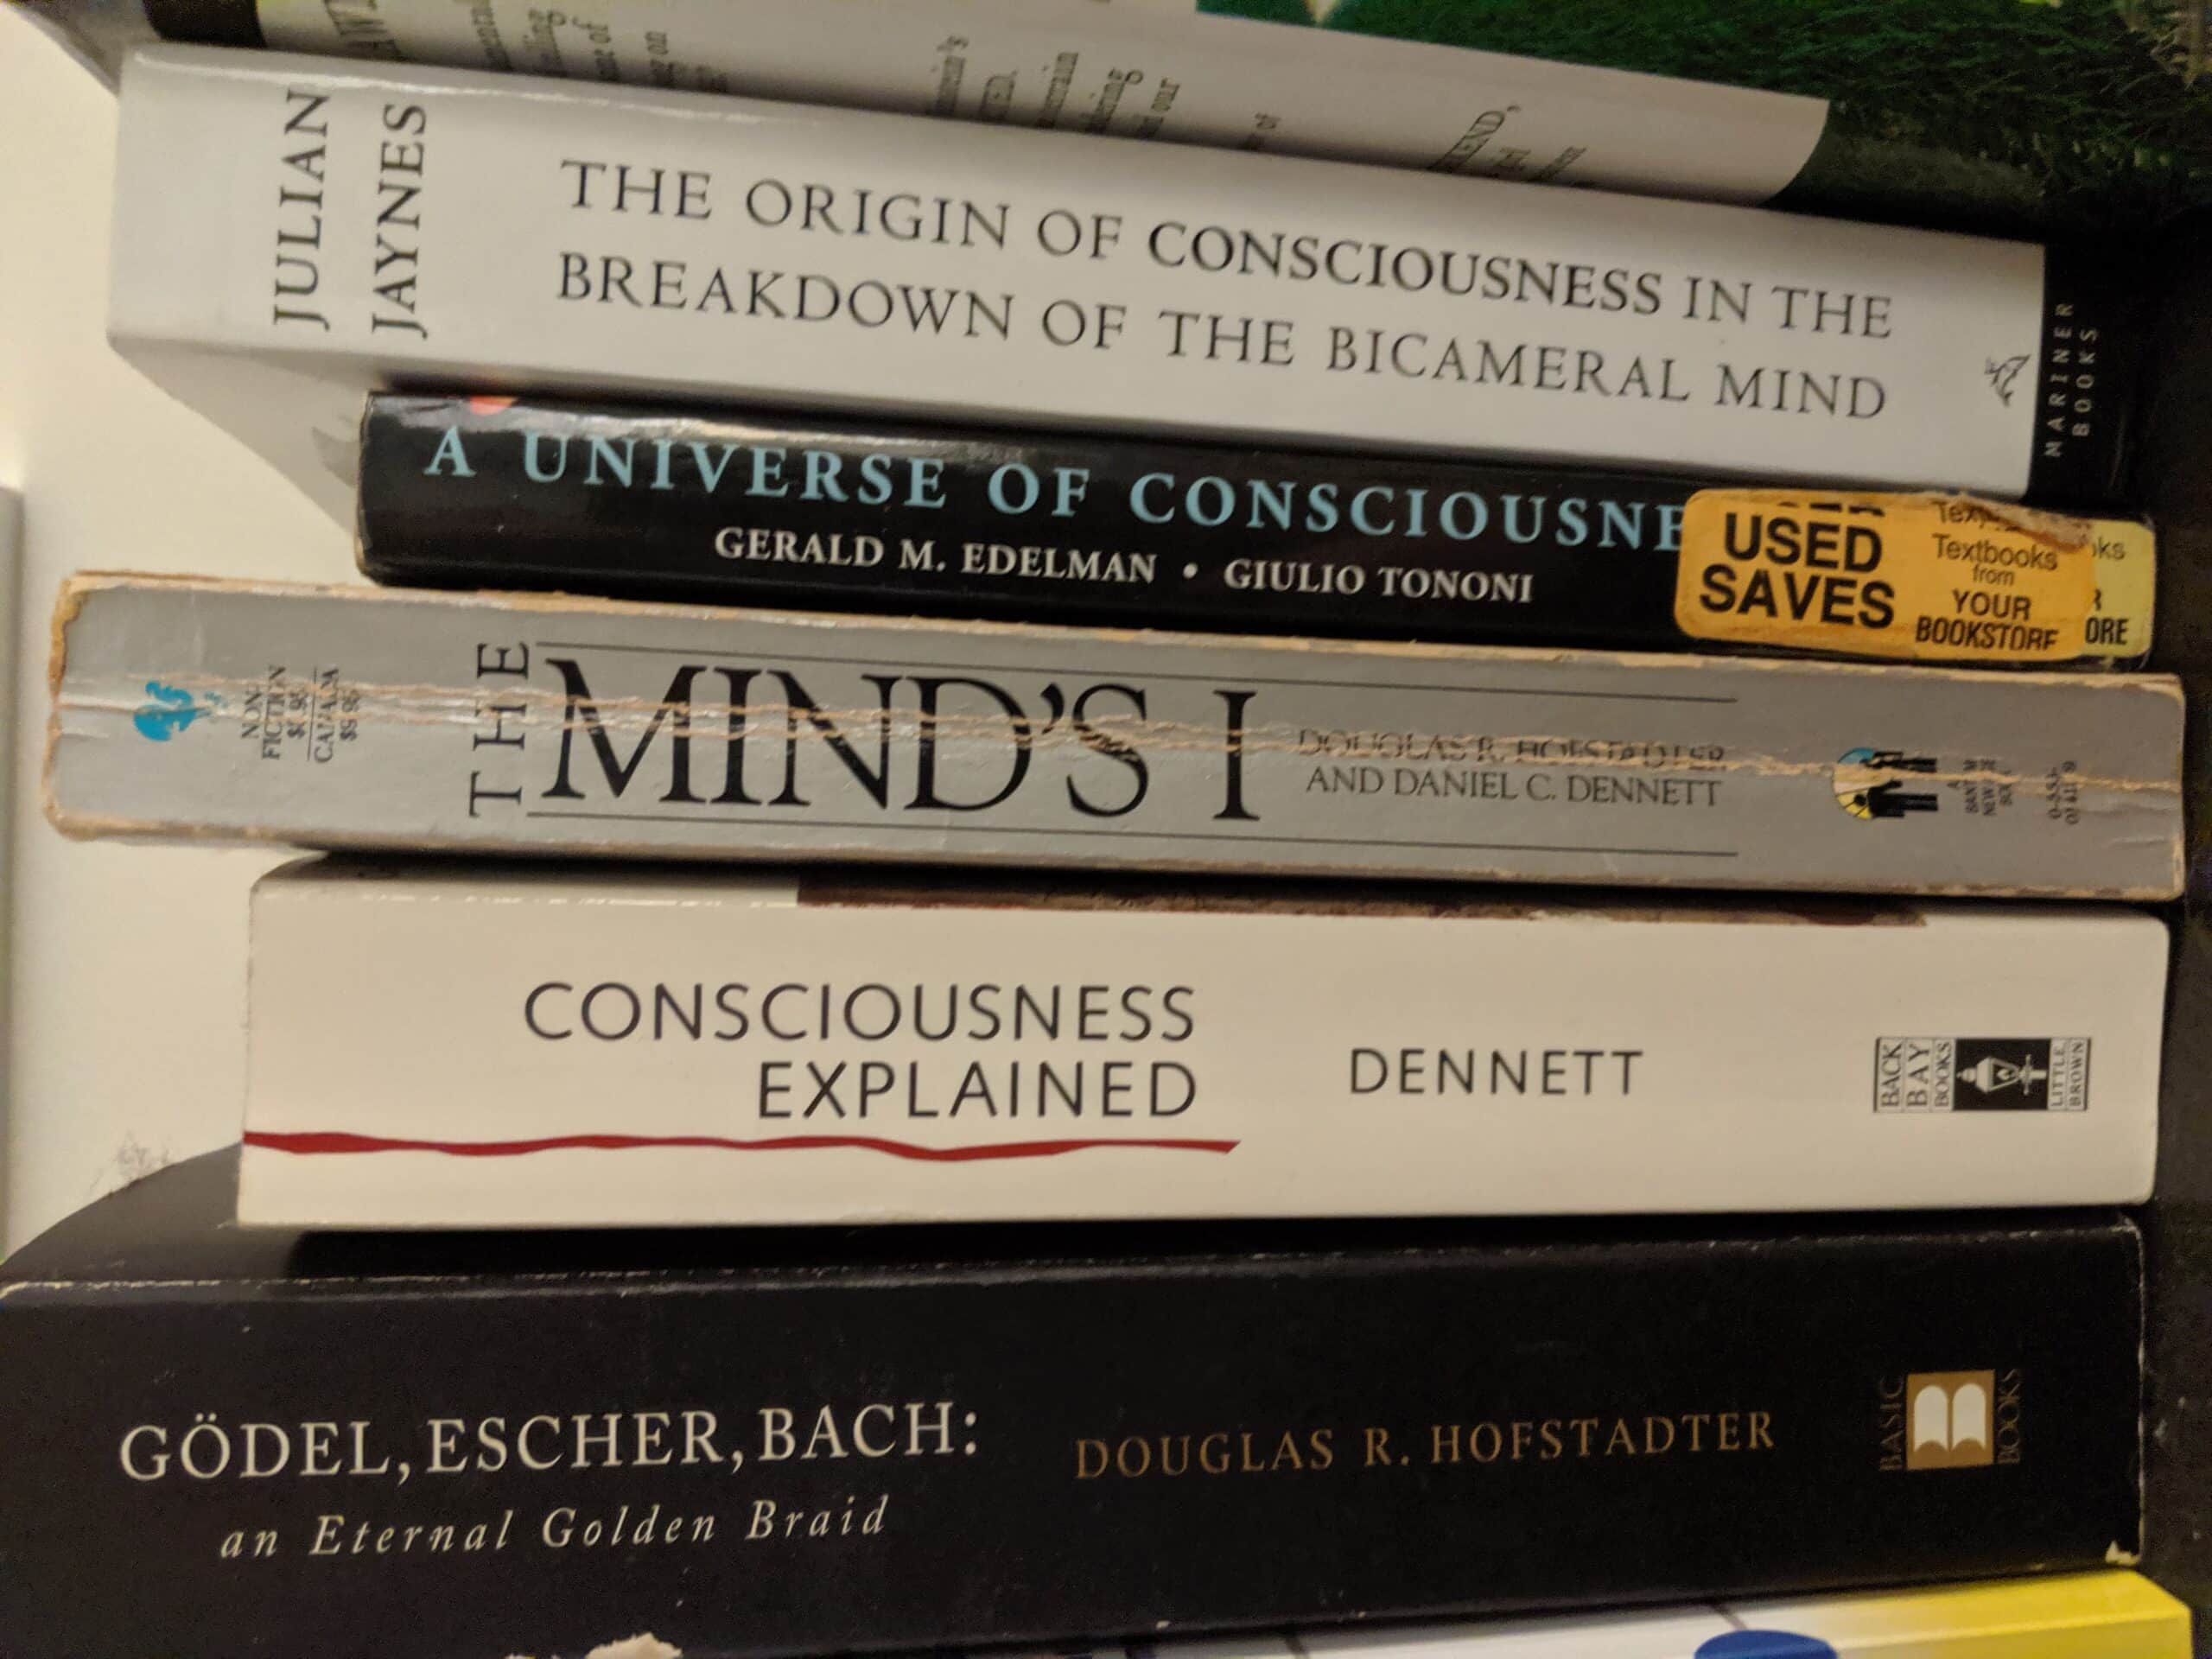 Here are books on consciousness found in our observable universe. These same books will also appear in a purely computational version of our universe – written by computational authors – who apparently are just as baffled by their conscious experiences as we are.